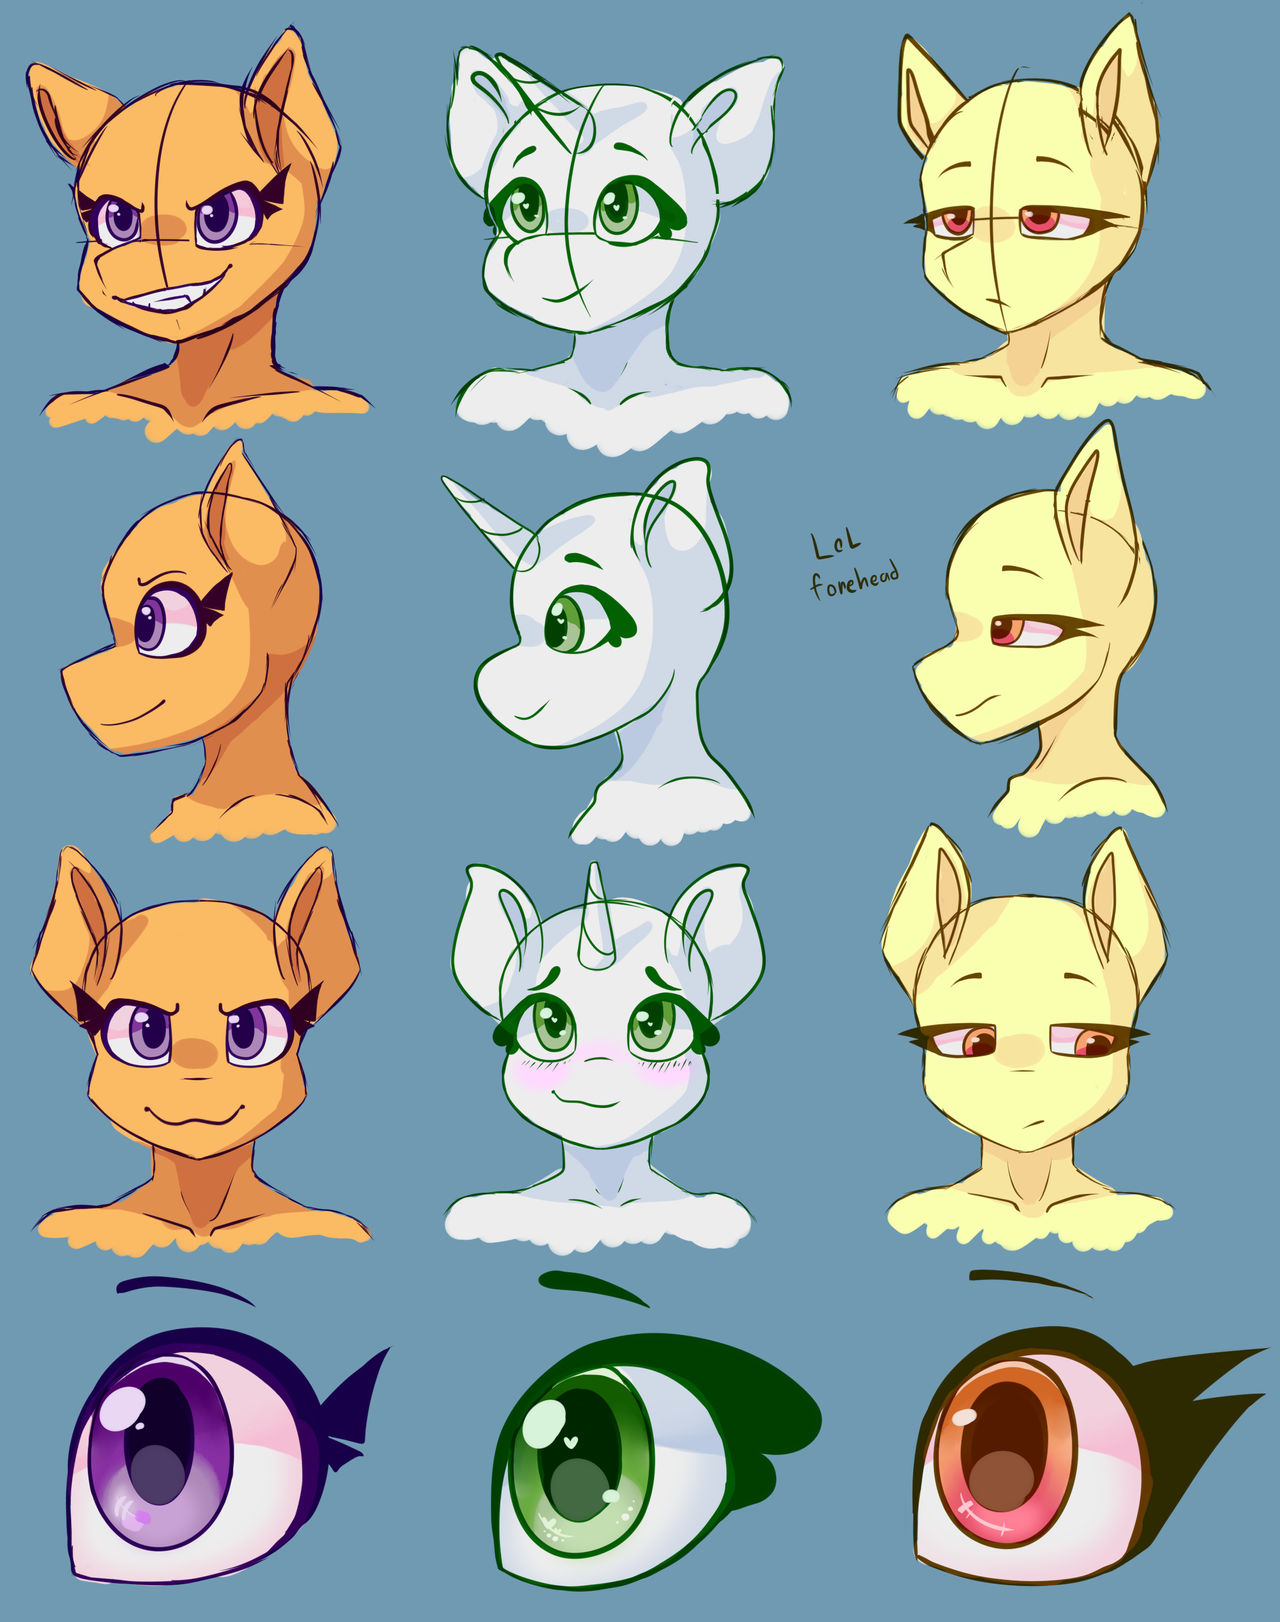 Same Face Syndrome Baddd By Synnibear03 On Deviantart Become part of the largest pixel art community. same face syndrome baddd by synnibear03